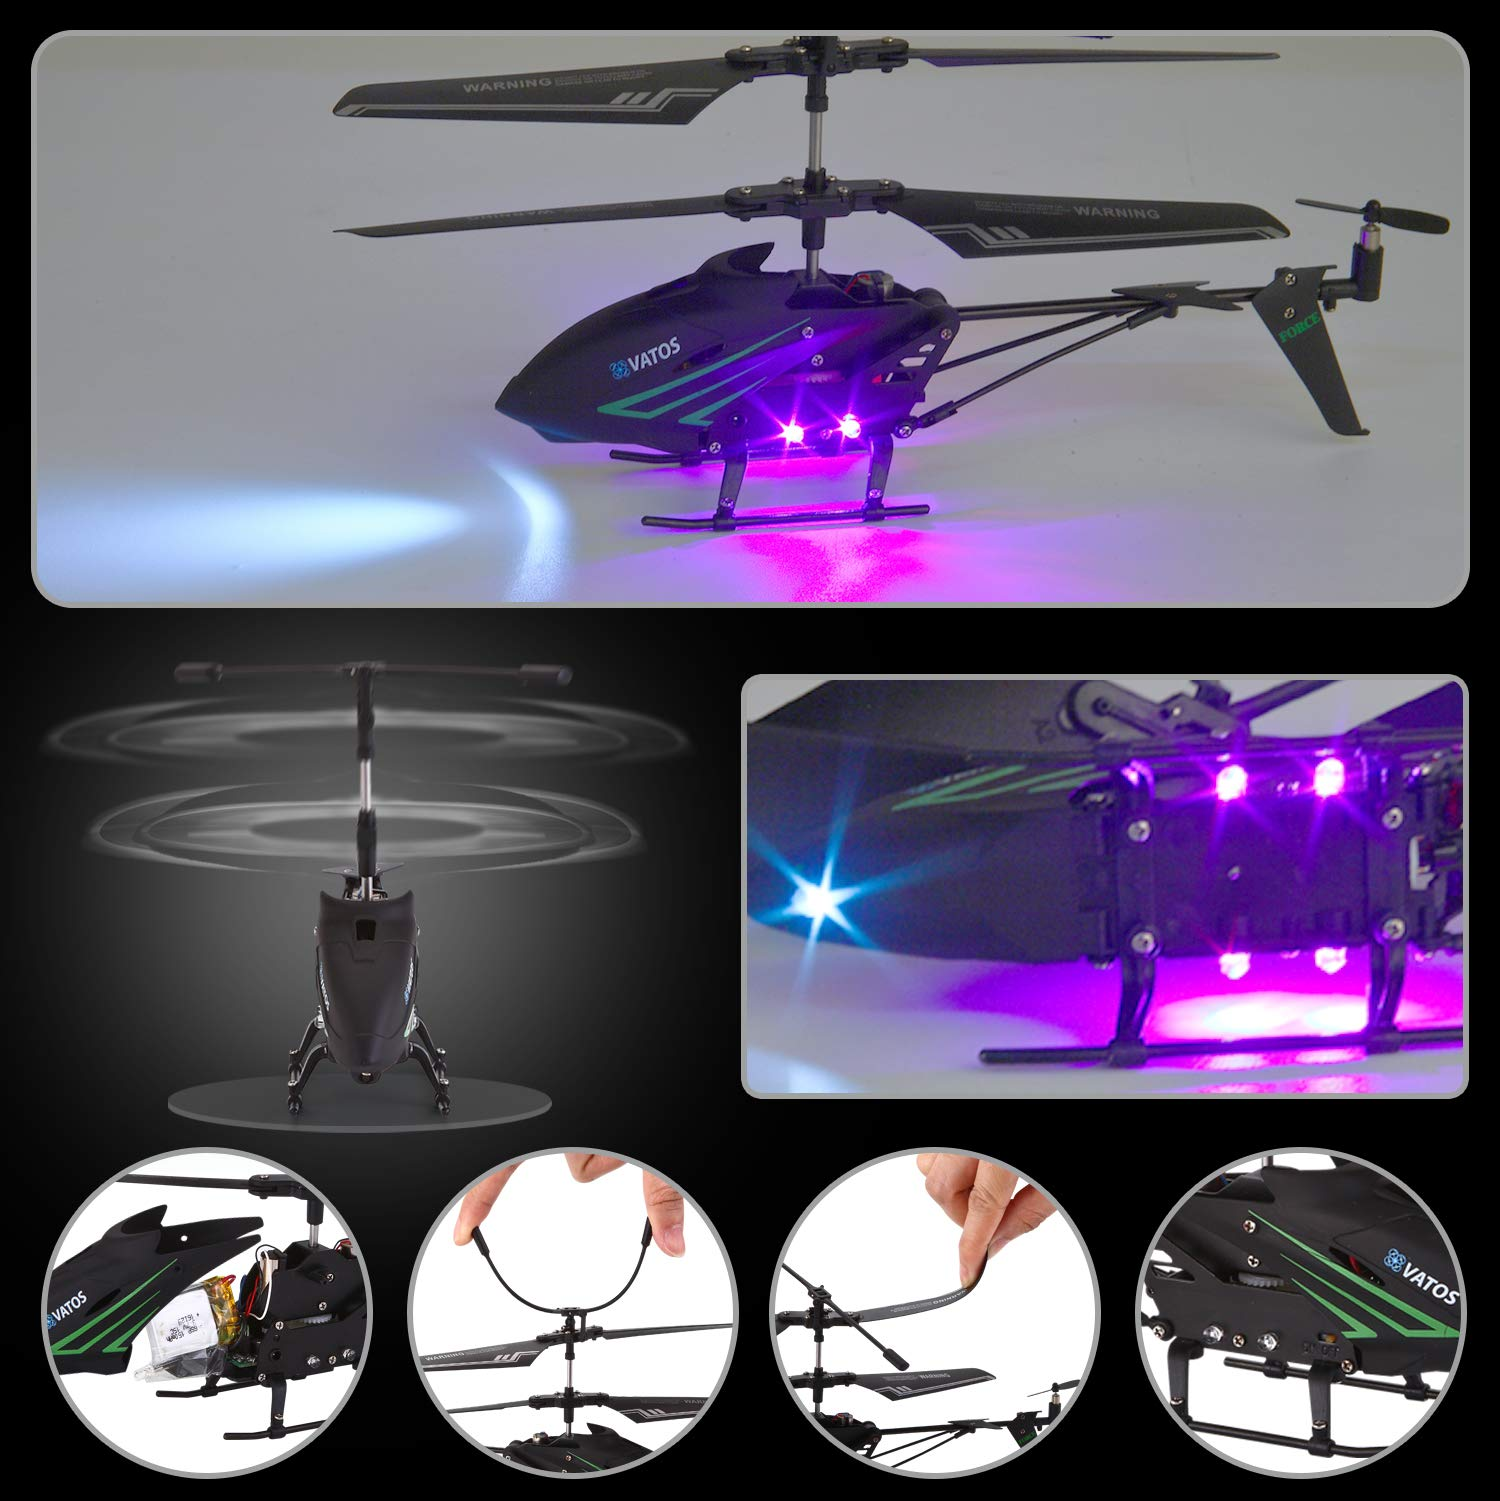 RC Helicopter, Remote Control Helicopter with Gyro and LED Light 3.5HZ Channel Alloy Mini Helicopter Remote Control for Kids & Adult Indoor Outdoor Micro RC Helicopter Best Helicopter Toy Gift by VATOS (Image #3)